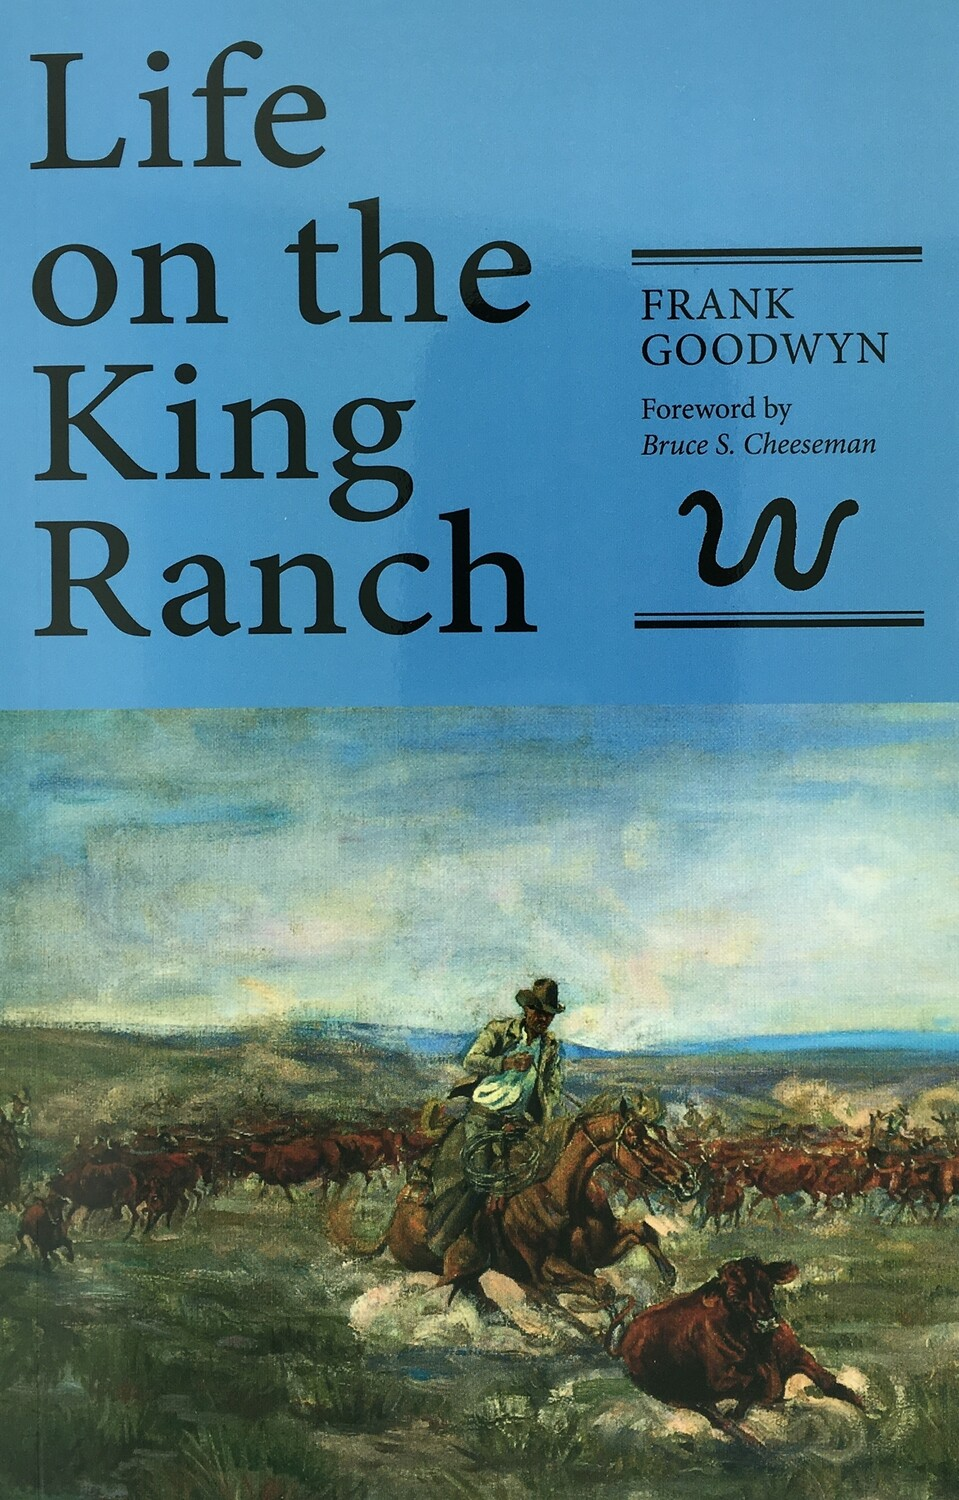 Life on the King Ranch